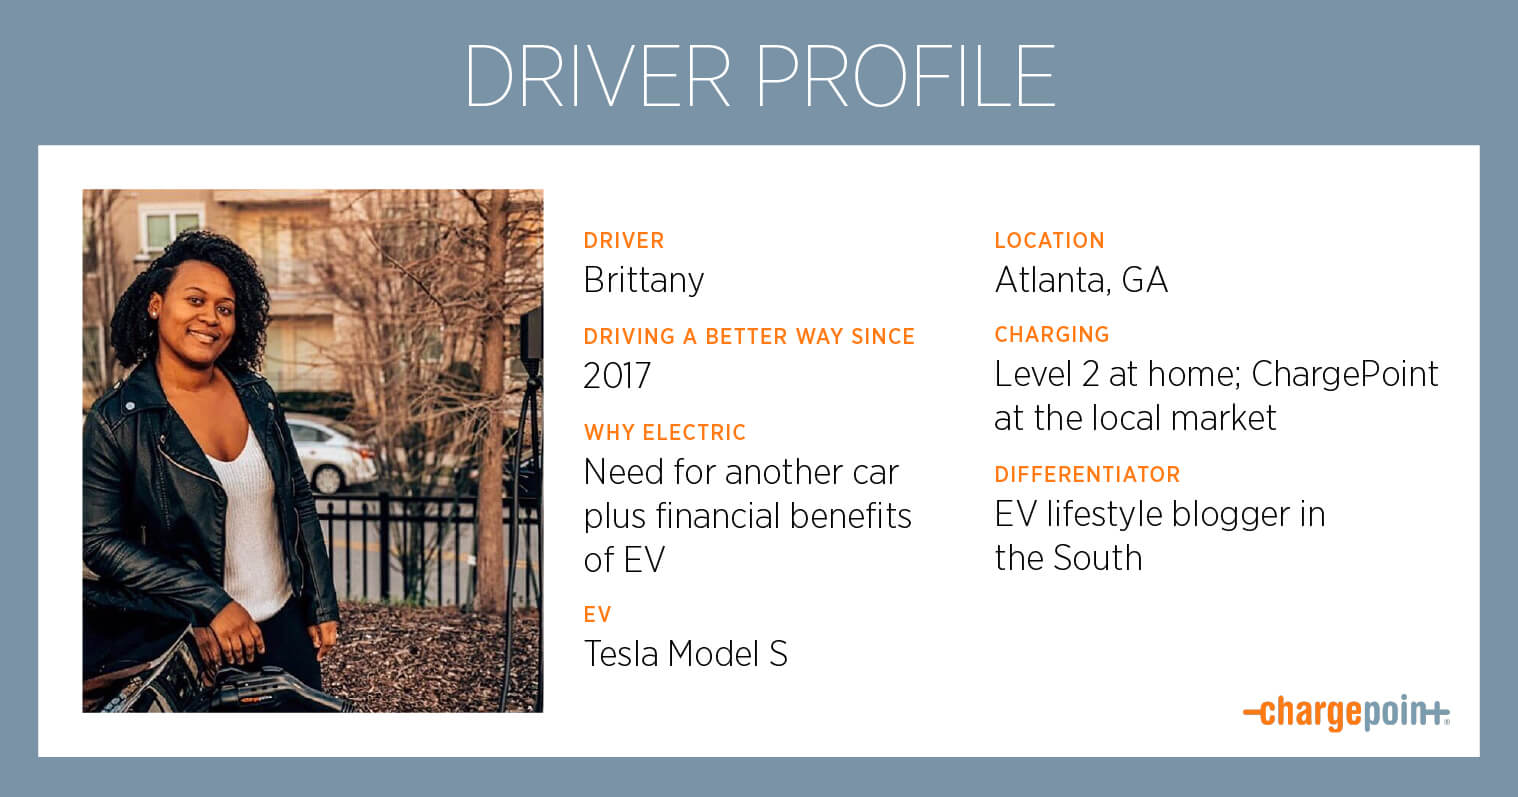 EV Driver Brittany Lives Life Electrified